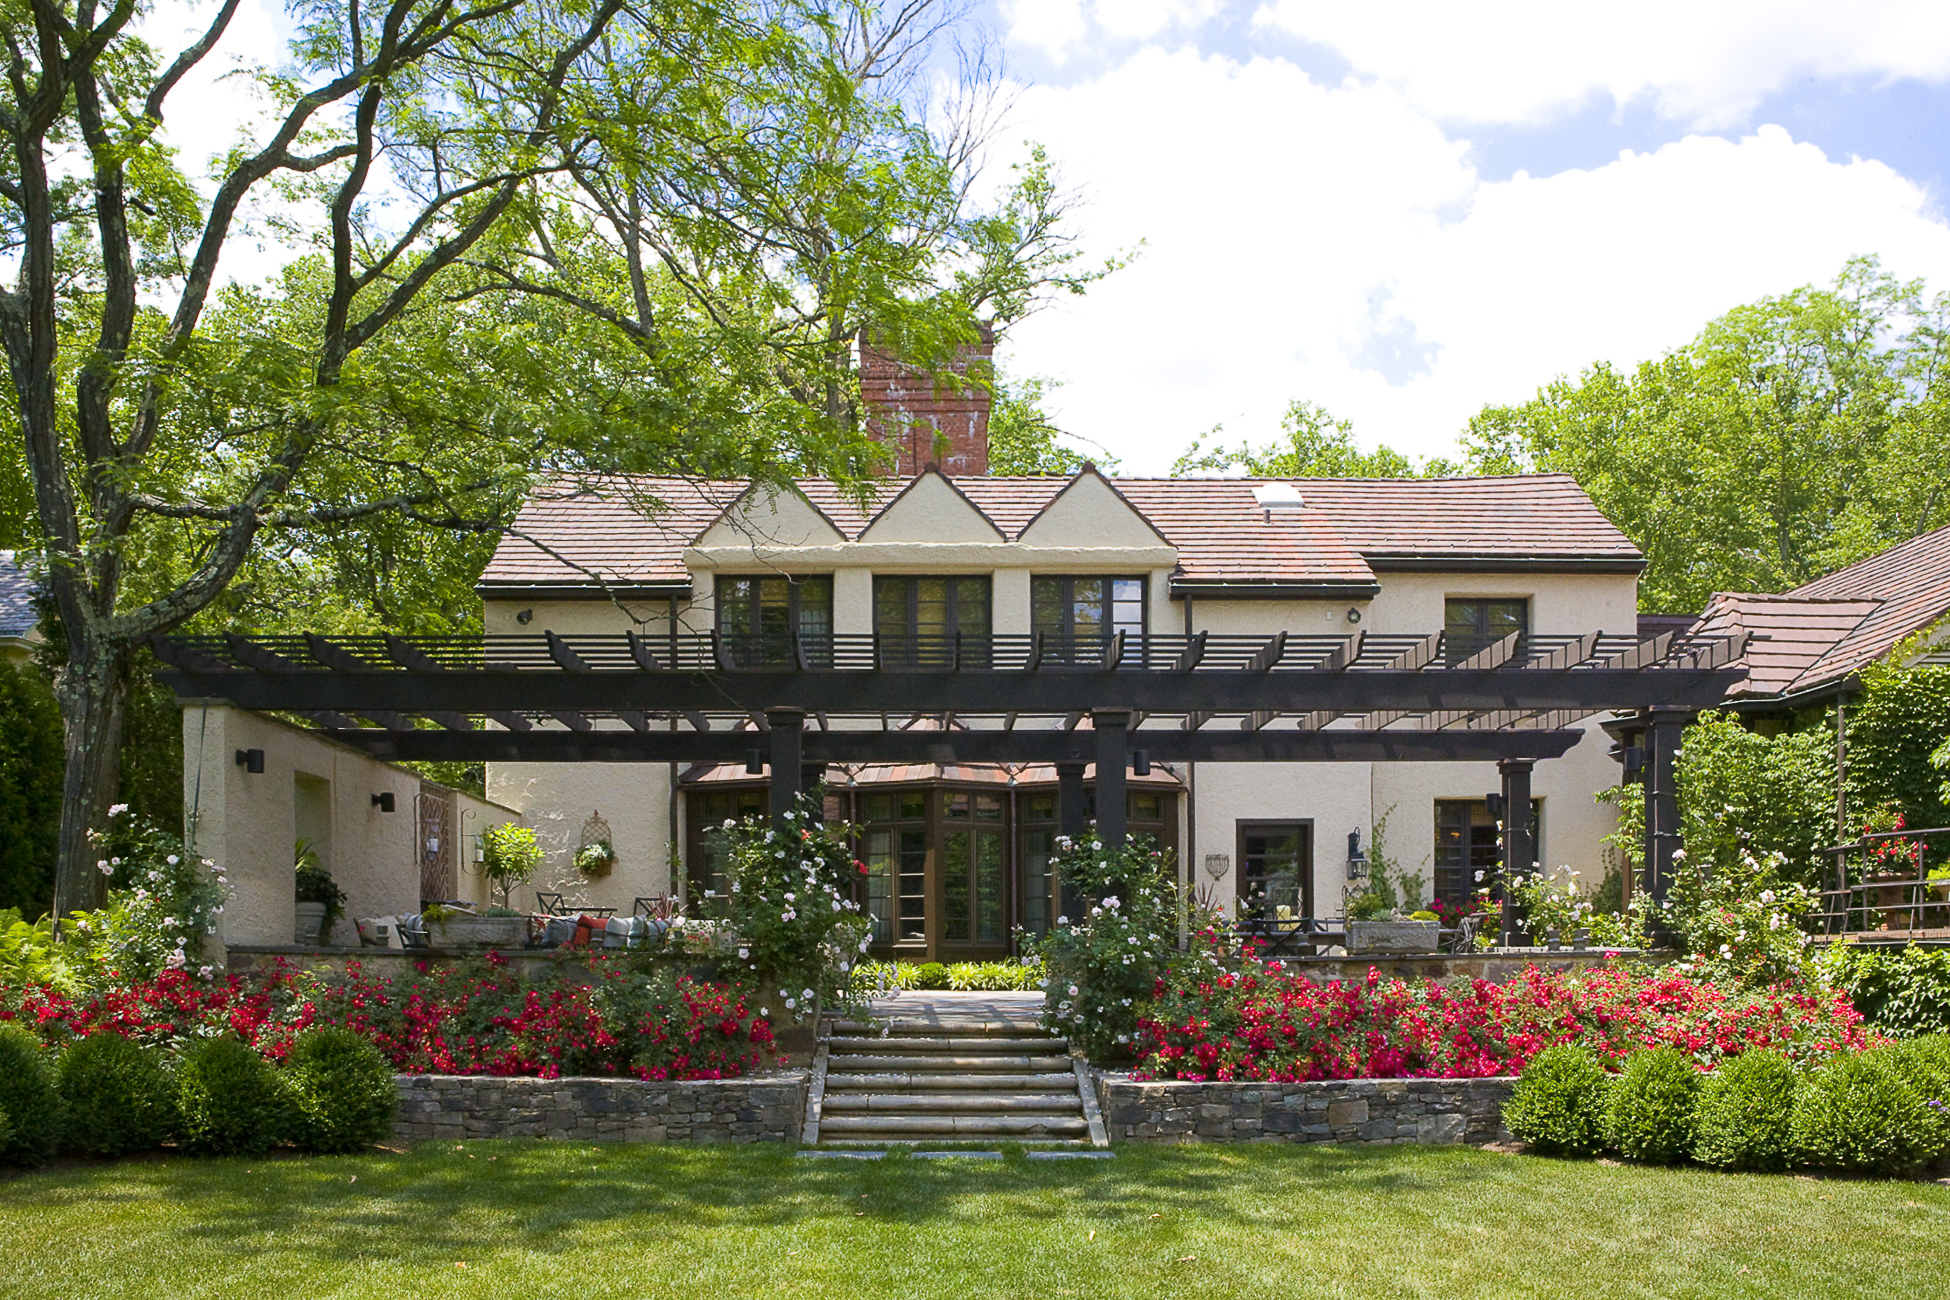 独户住宅 为 销售 在 Edwin Lutyens Inspired Architecture 64 Battle Road Princeton, 新泽西州 08540 美国